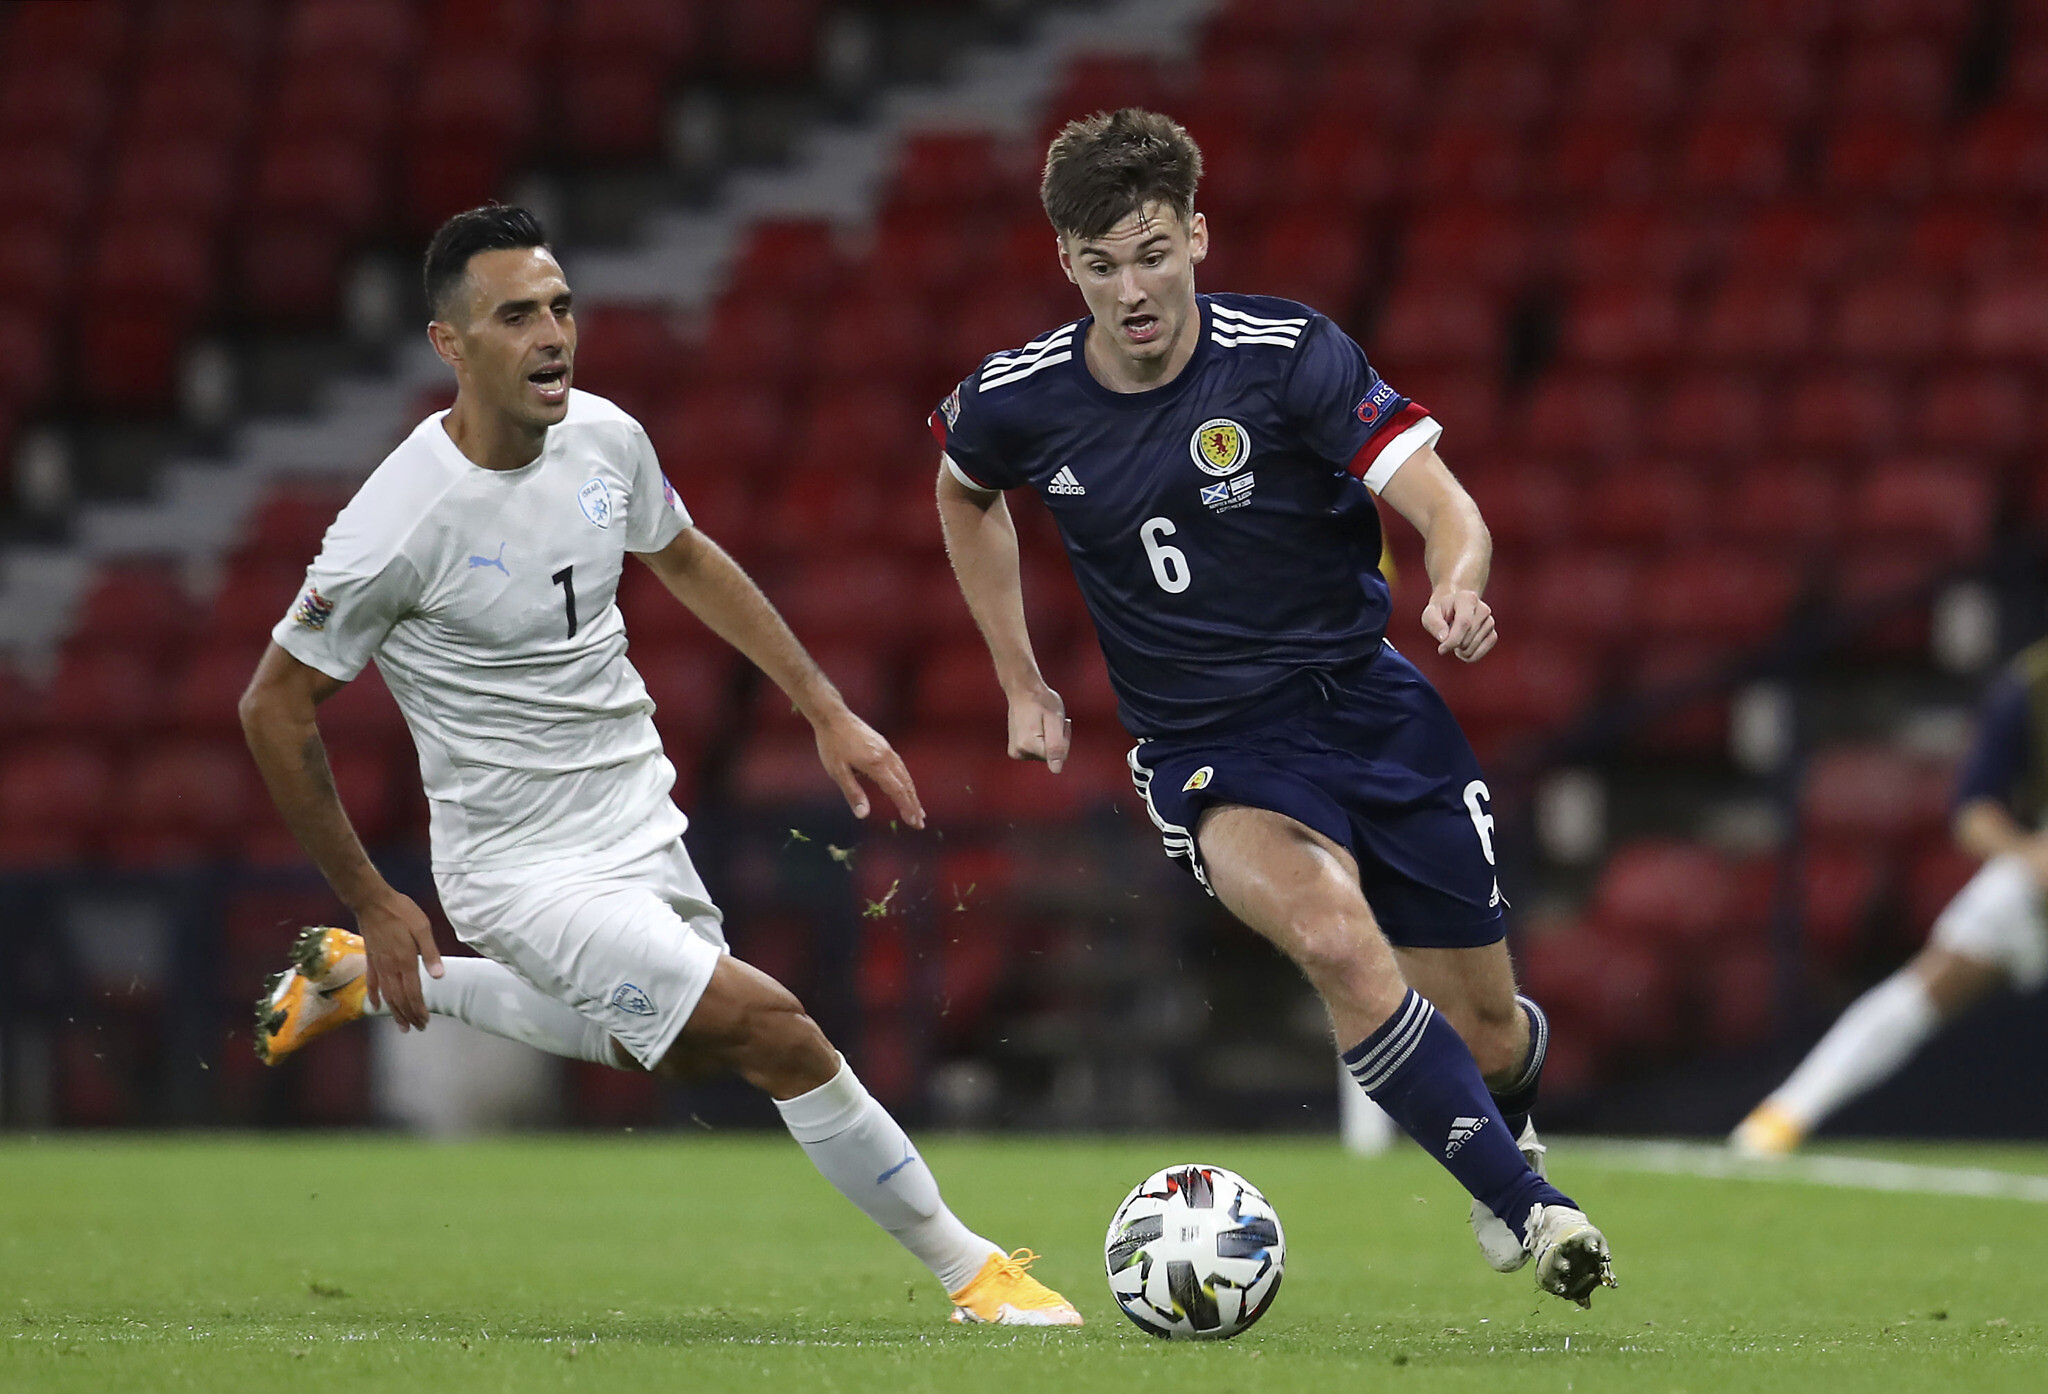 Israel Ties Scotland 1 1 In Uefa Nations League Opener The Times Of Israel